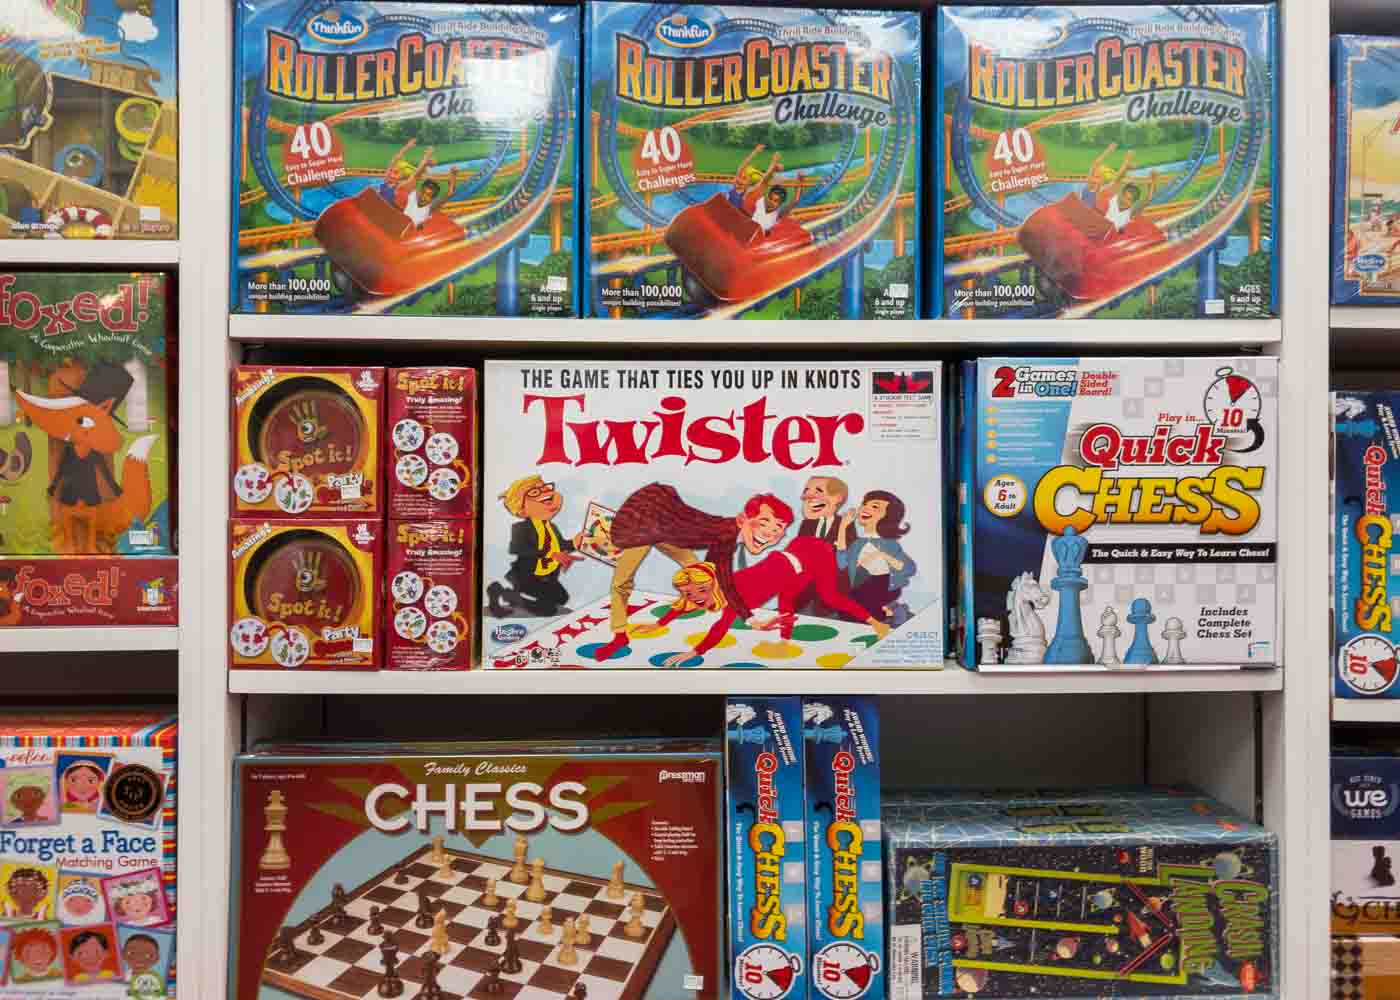 Classic board games that have stood the test of time make for a winning gift.